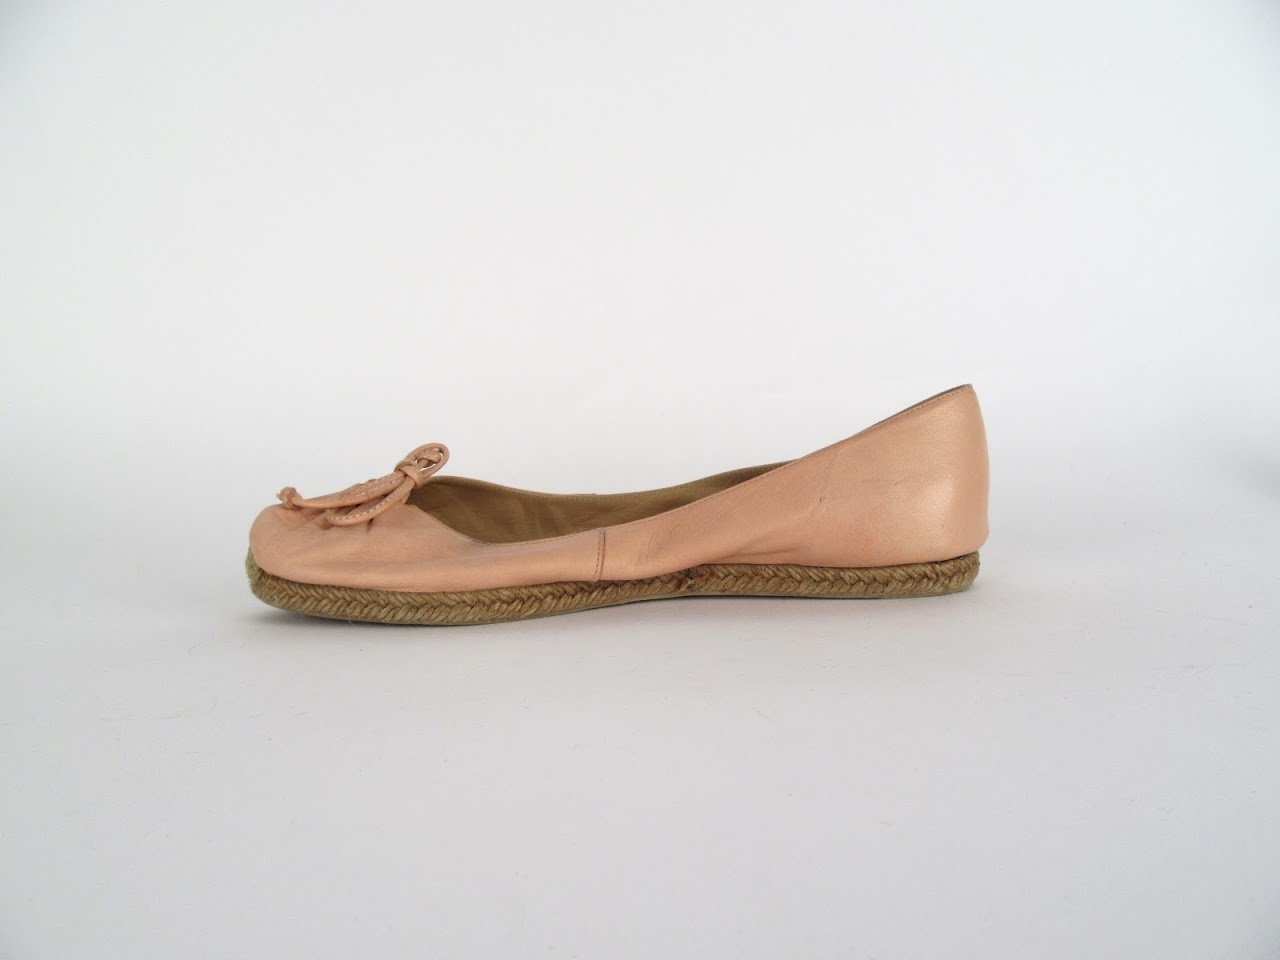 official photos 9c7a1 38edf Christian Louboutin Espadrille Flats in Tan Leather ...